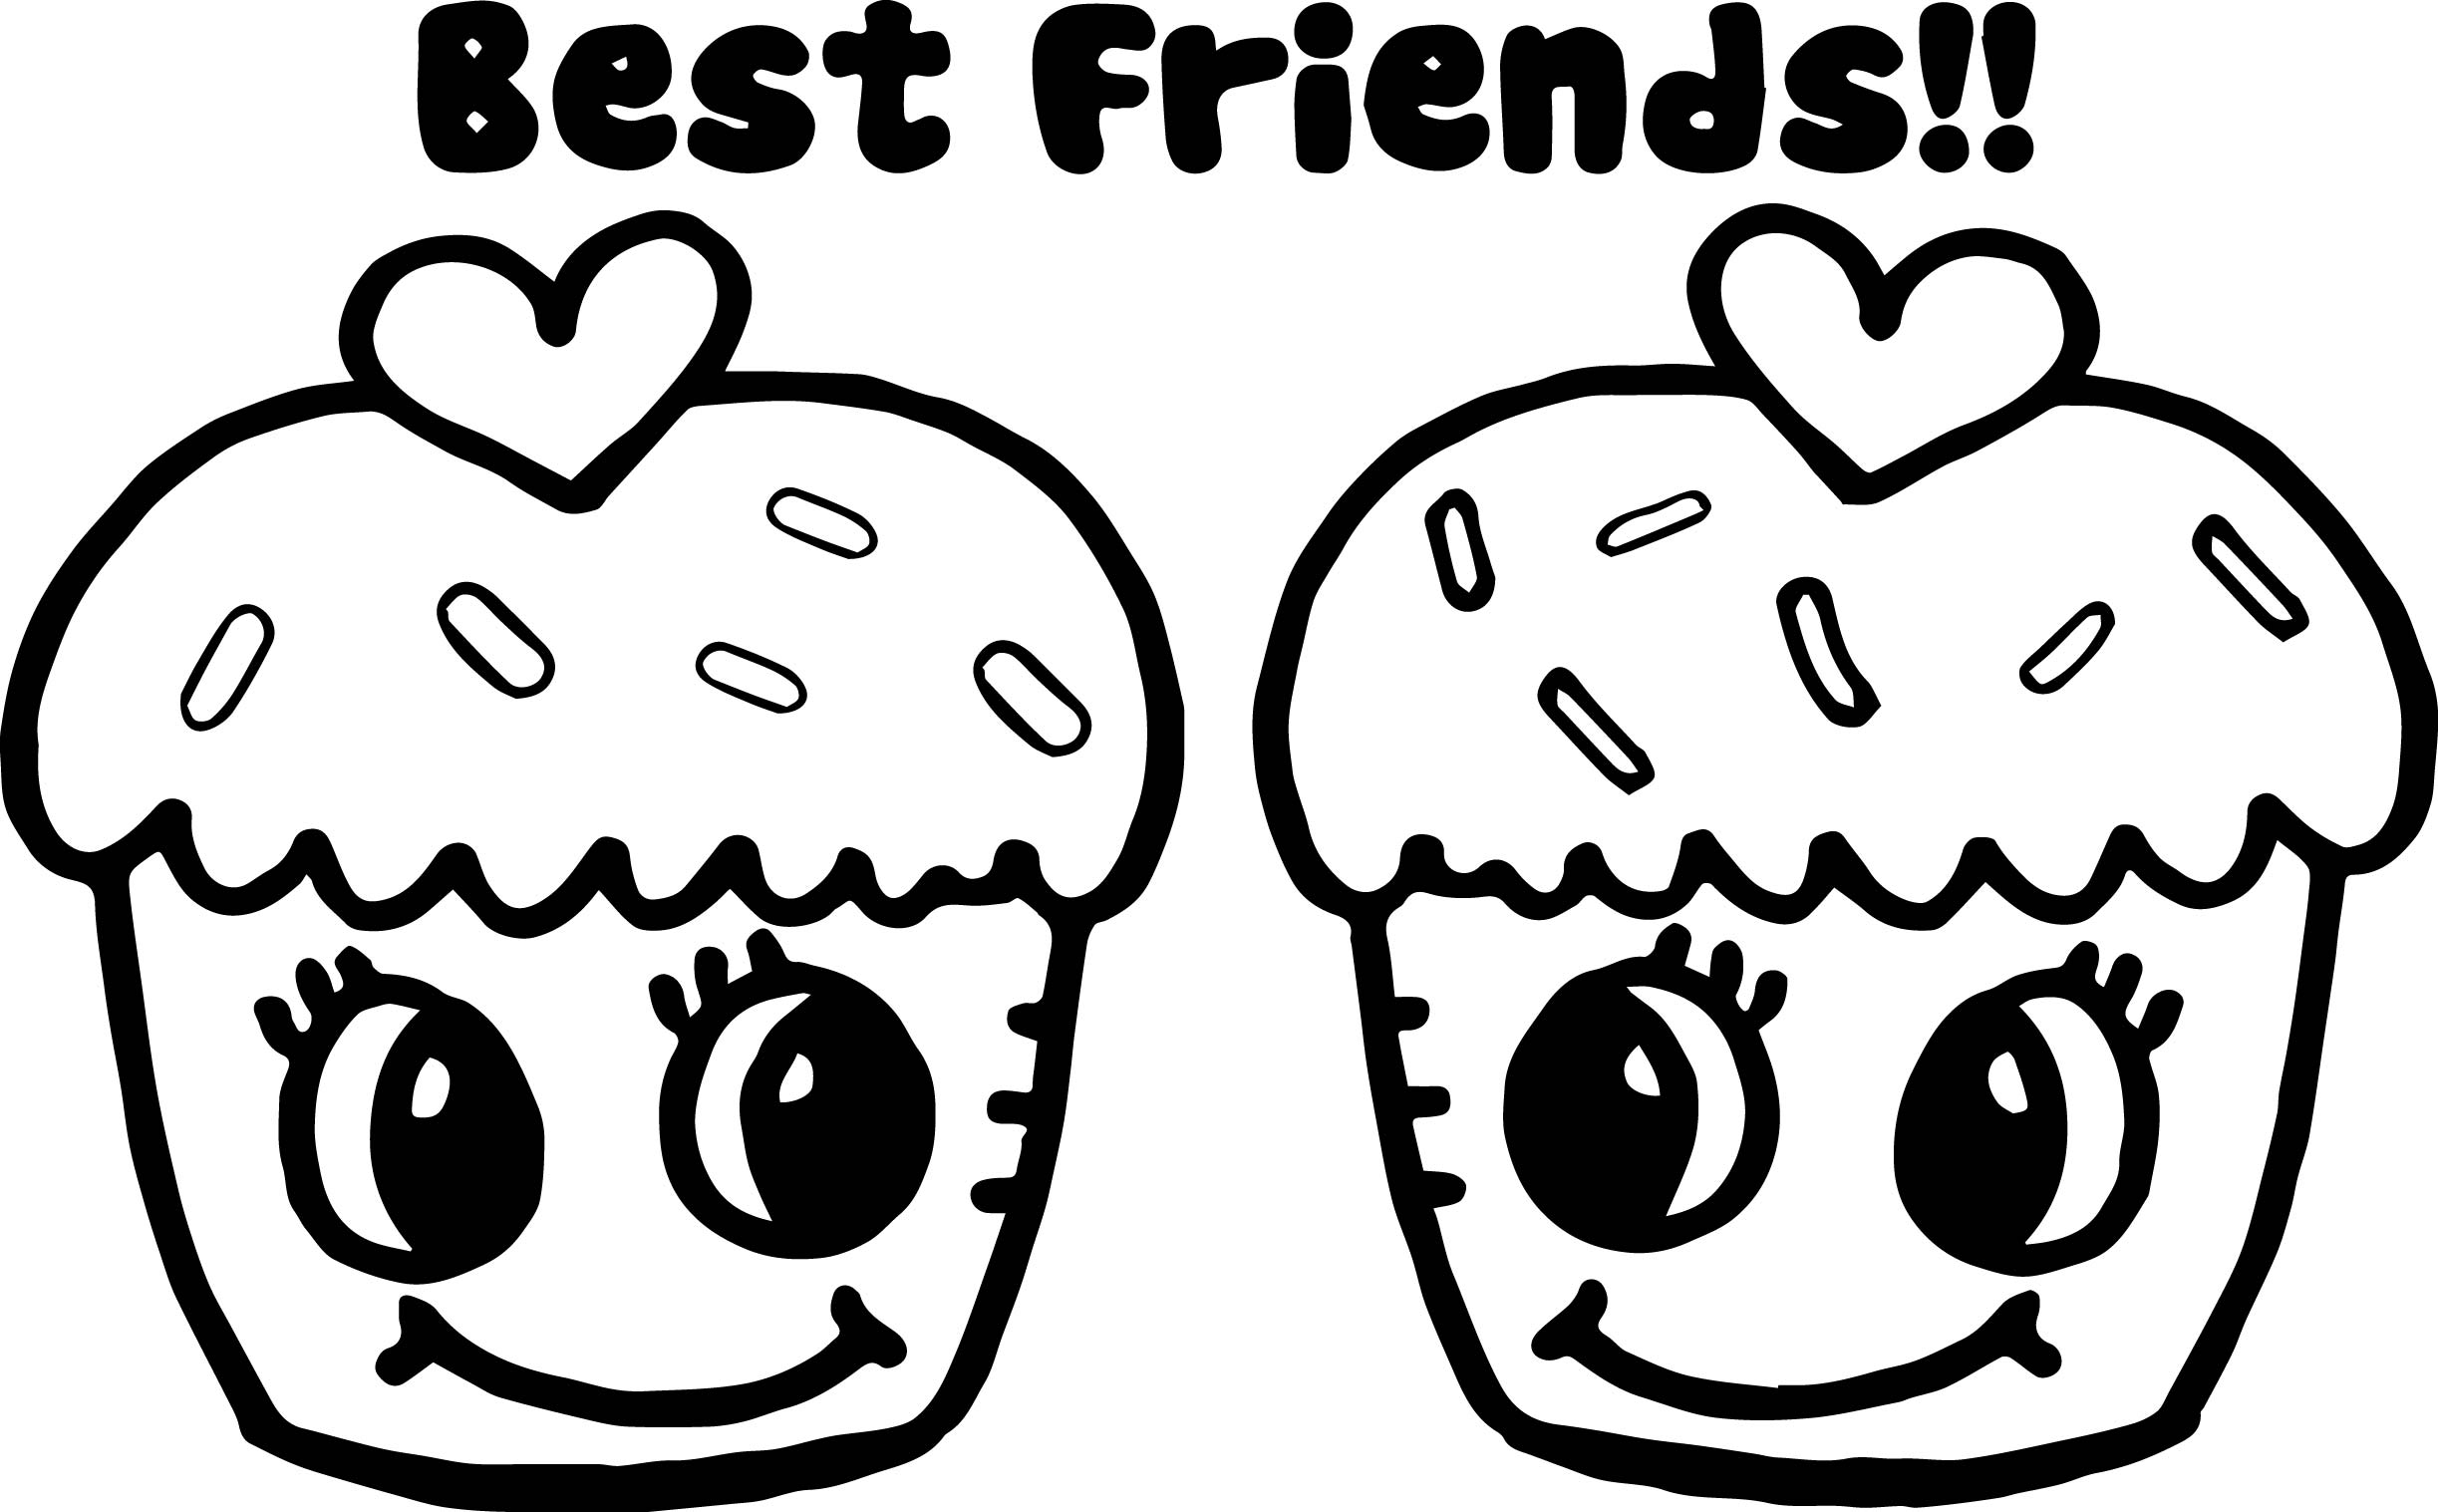 Cupcakes Best Friends Coloring Page Wecoloringpage Best Colouring Pages